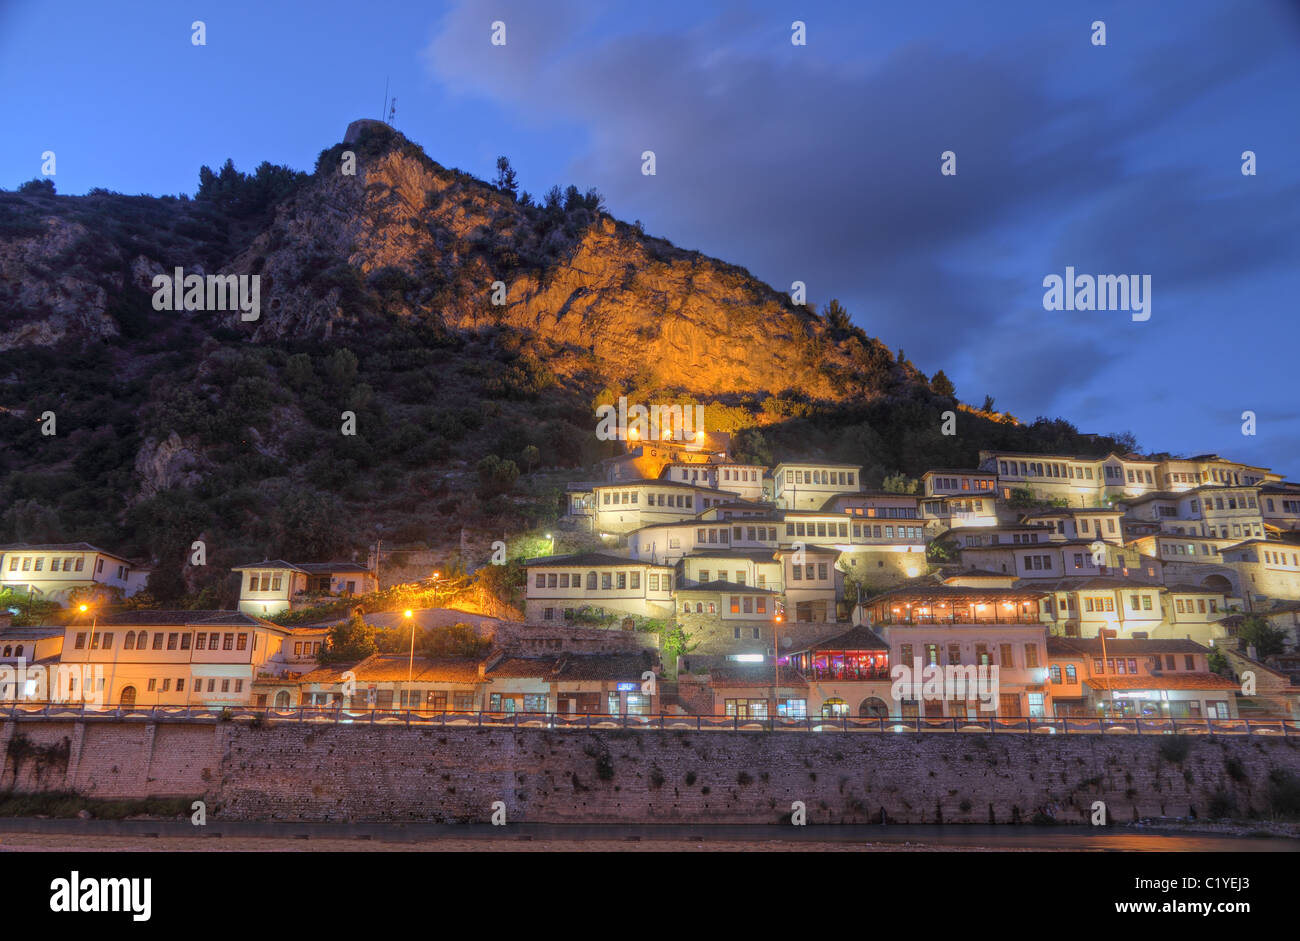 Historic city of Berat in Albania with white houses gathering on a hill also called city of a thousand windows. - Stock Image